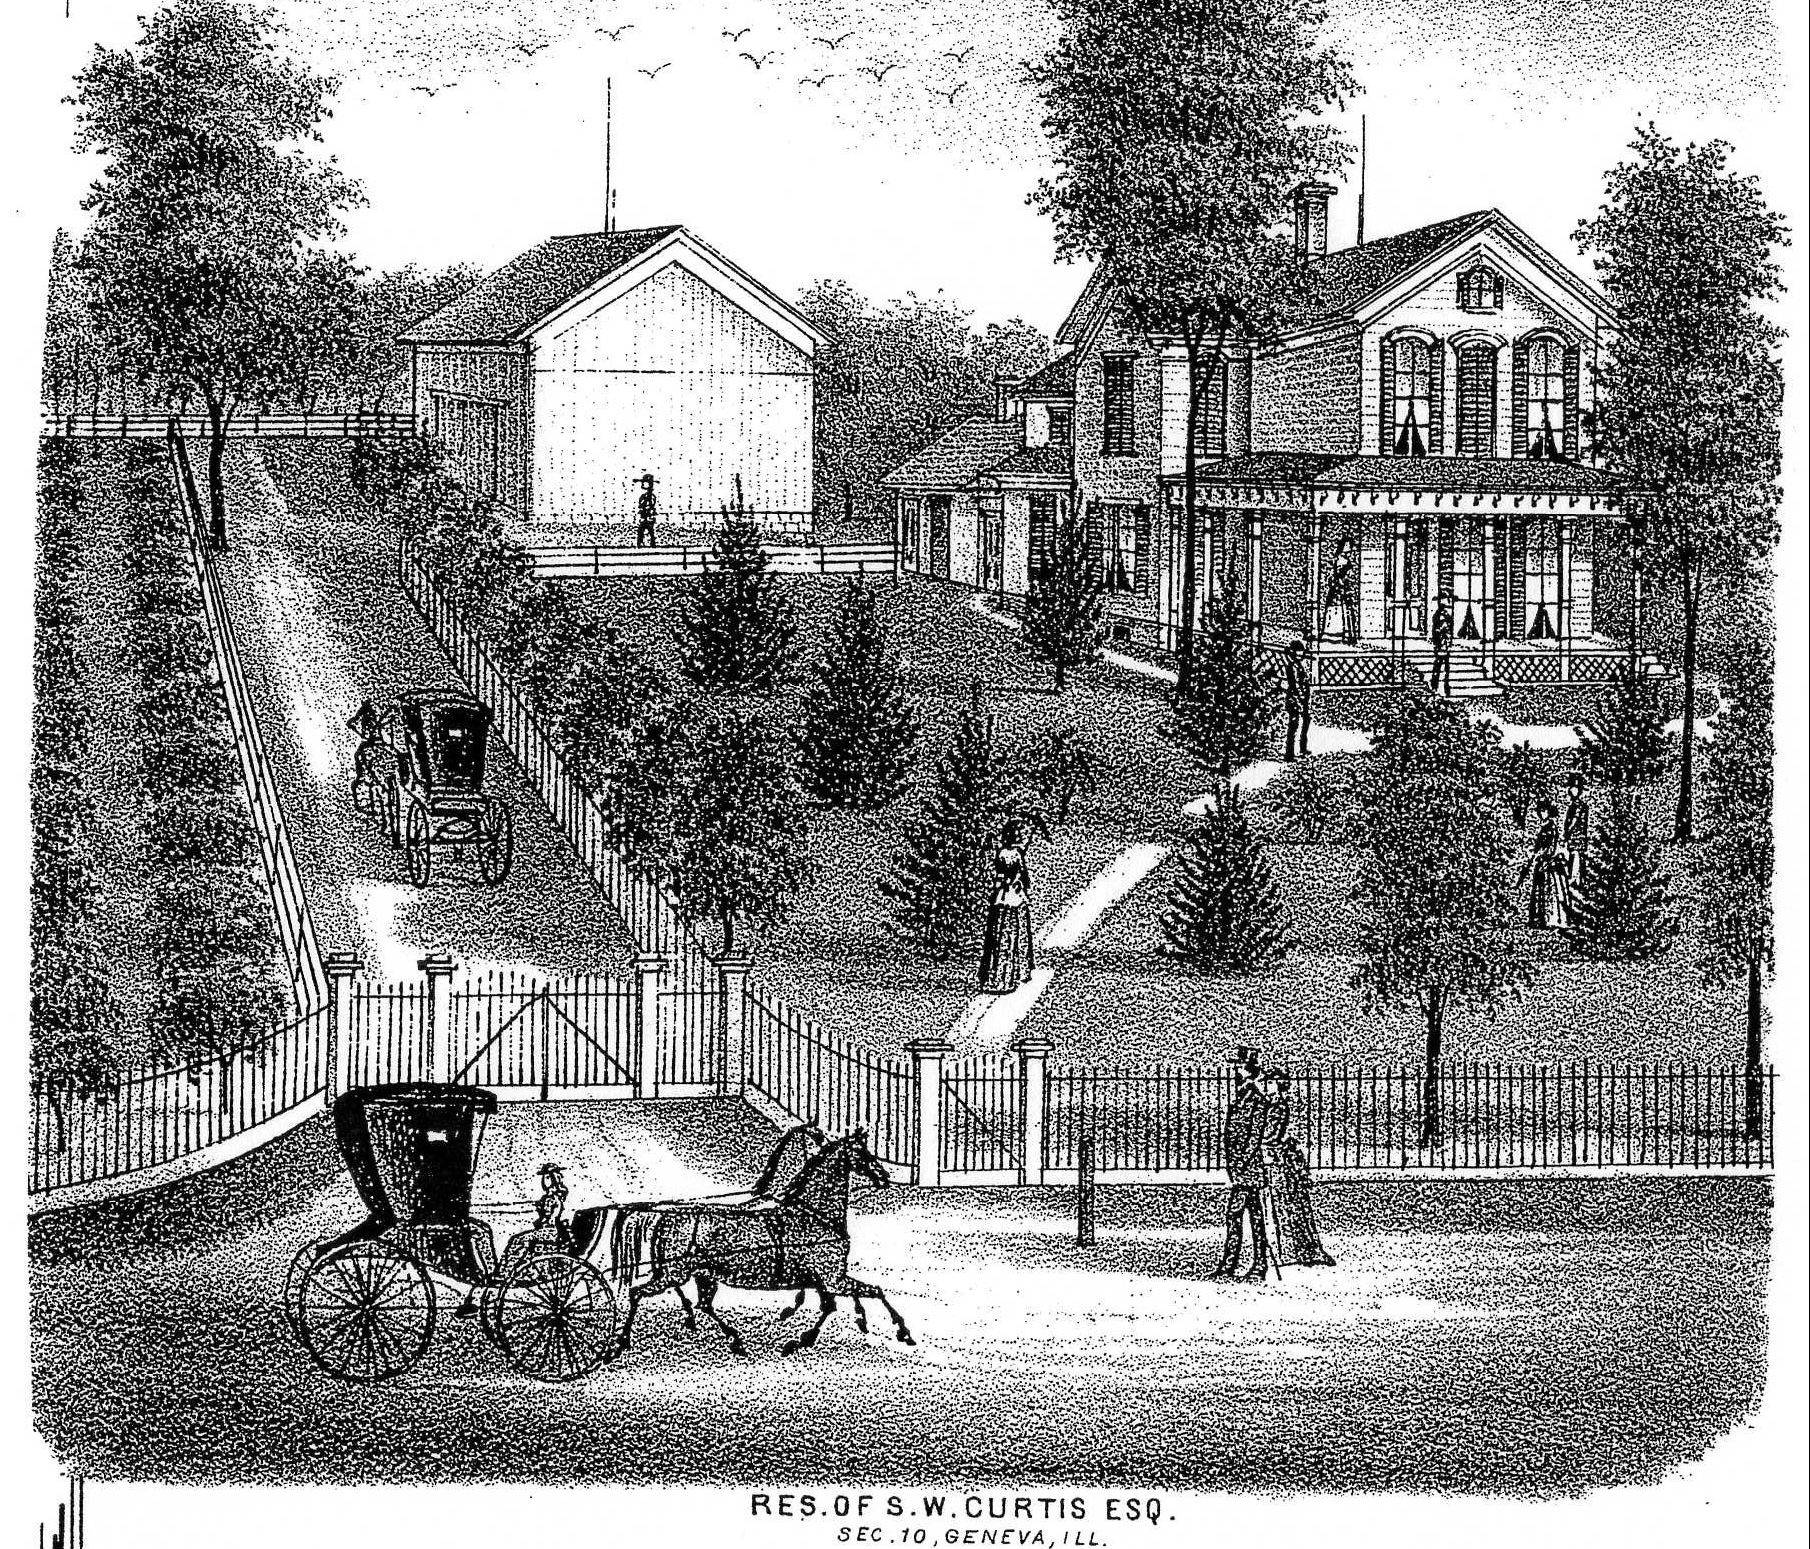 The 1872 Kane County Atlas contained this lithograph of the Curtis home.